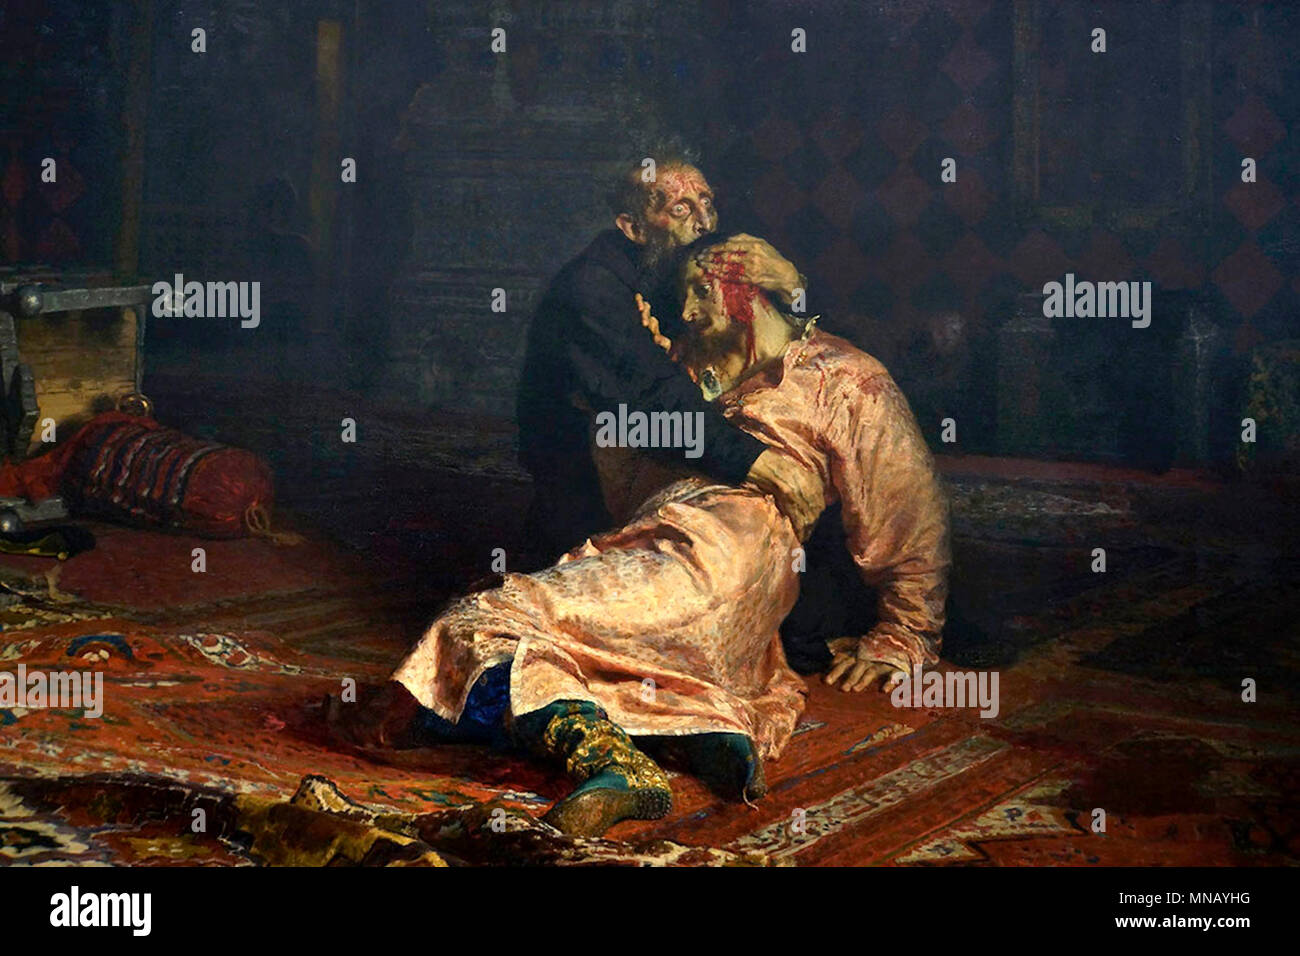 Ivan the Terrible killing his son by Ilya Repin, Ivan IV Vasilyevich (1584) - Stock Image